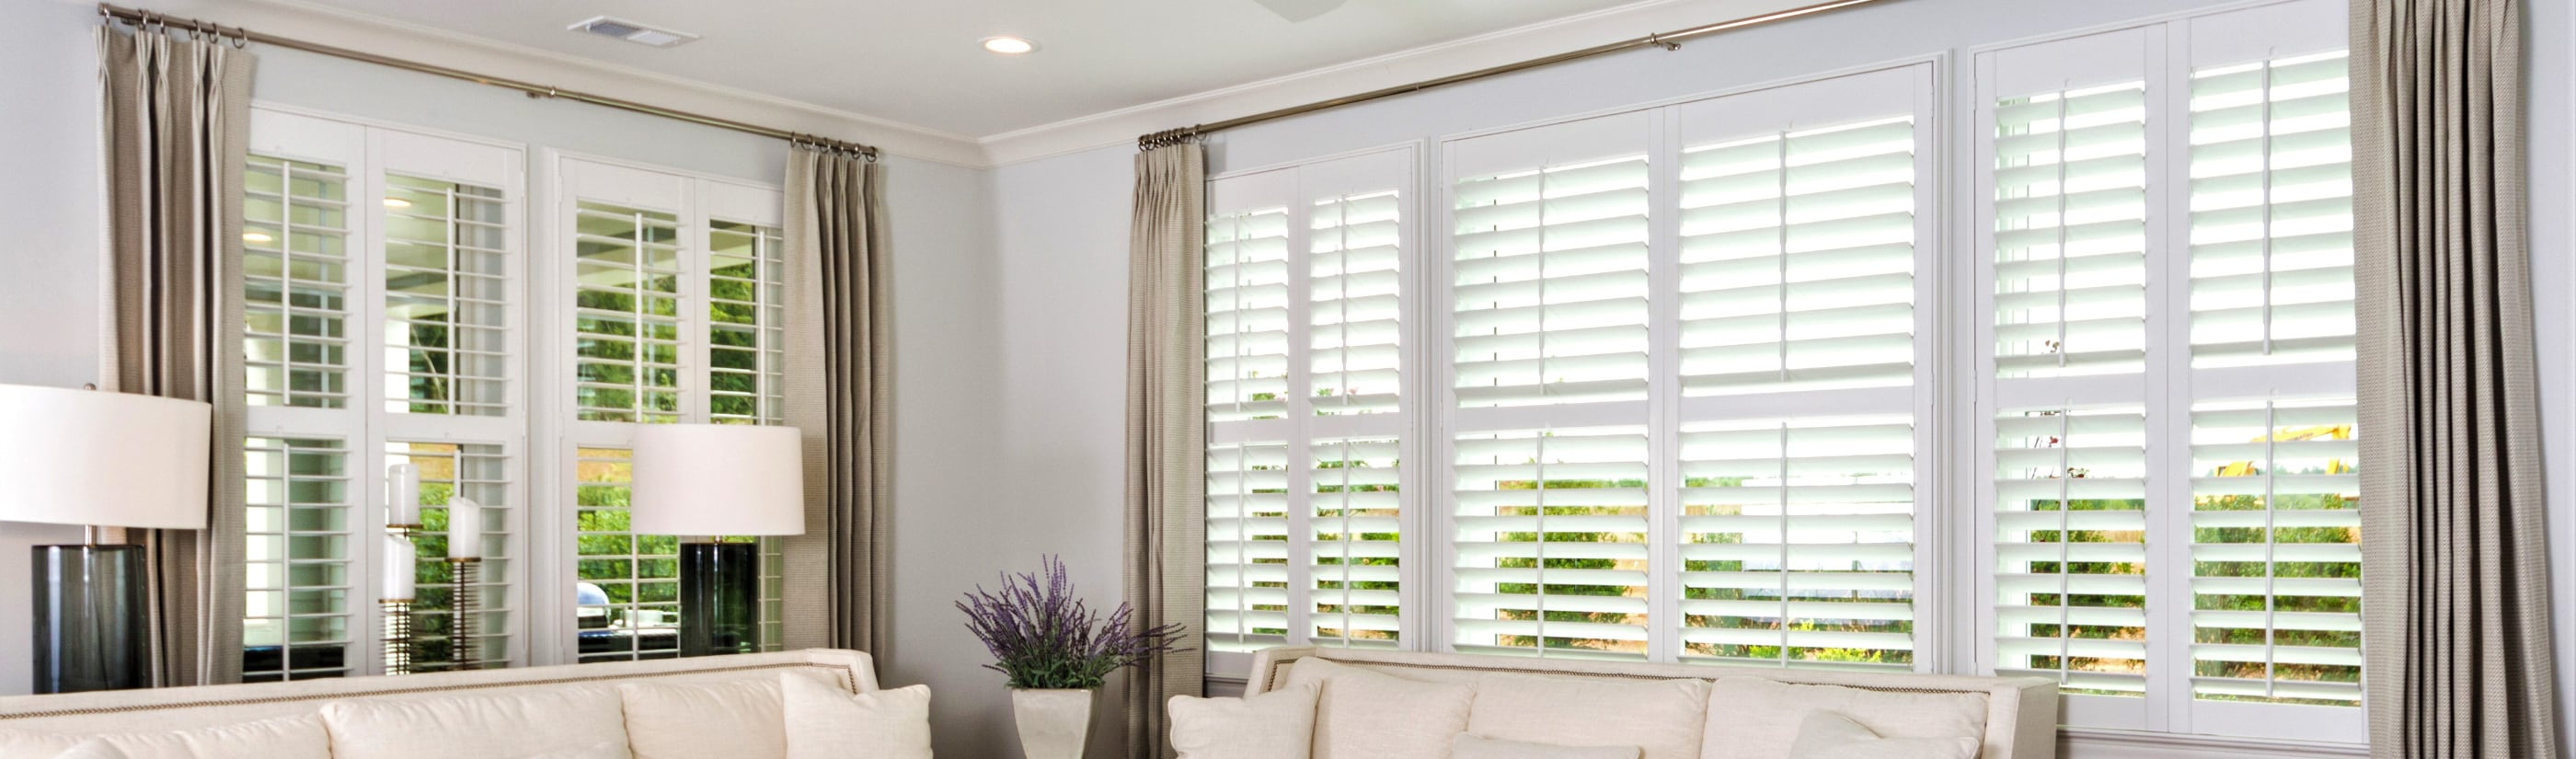 Polywood Shutters Paints In Chicago